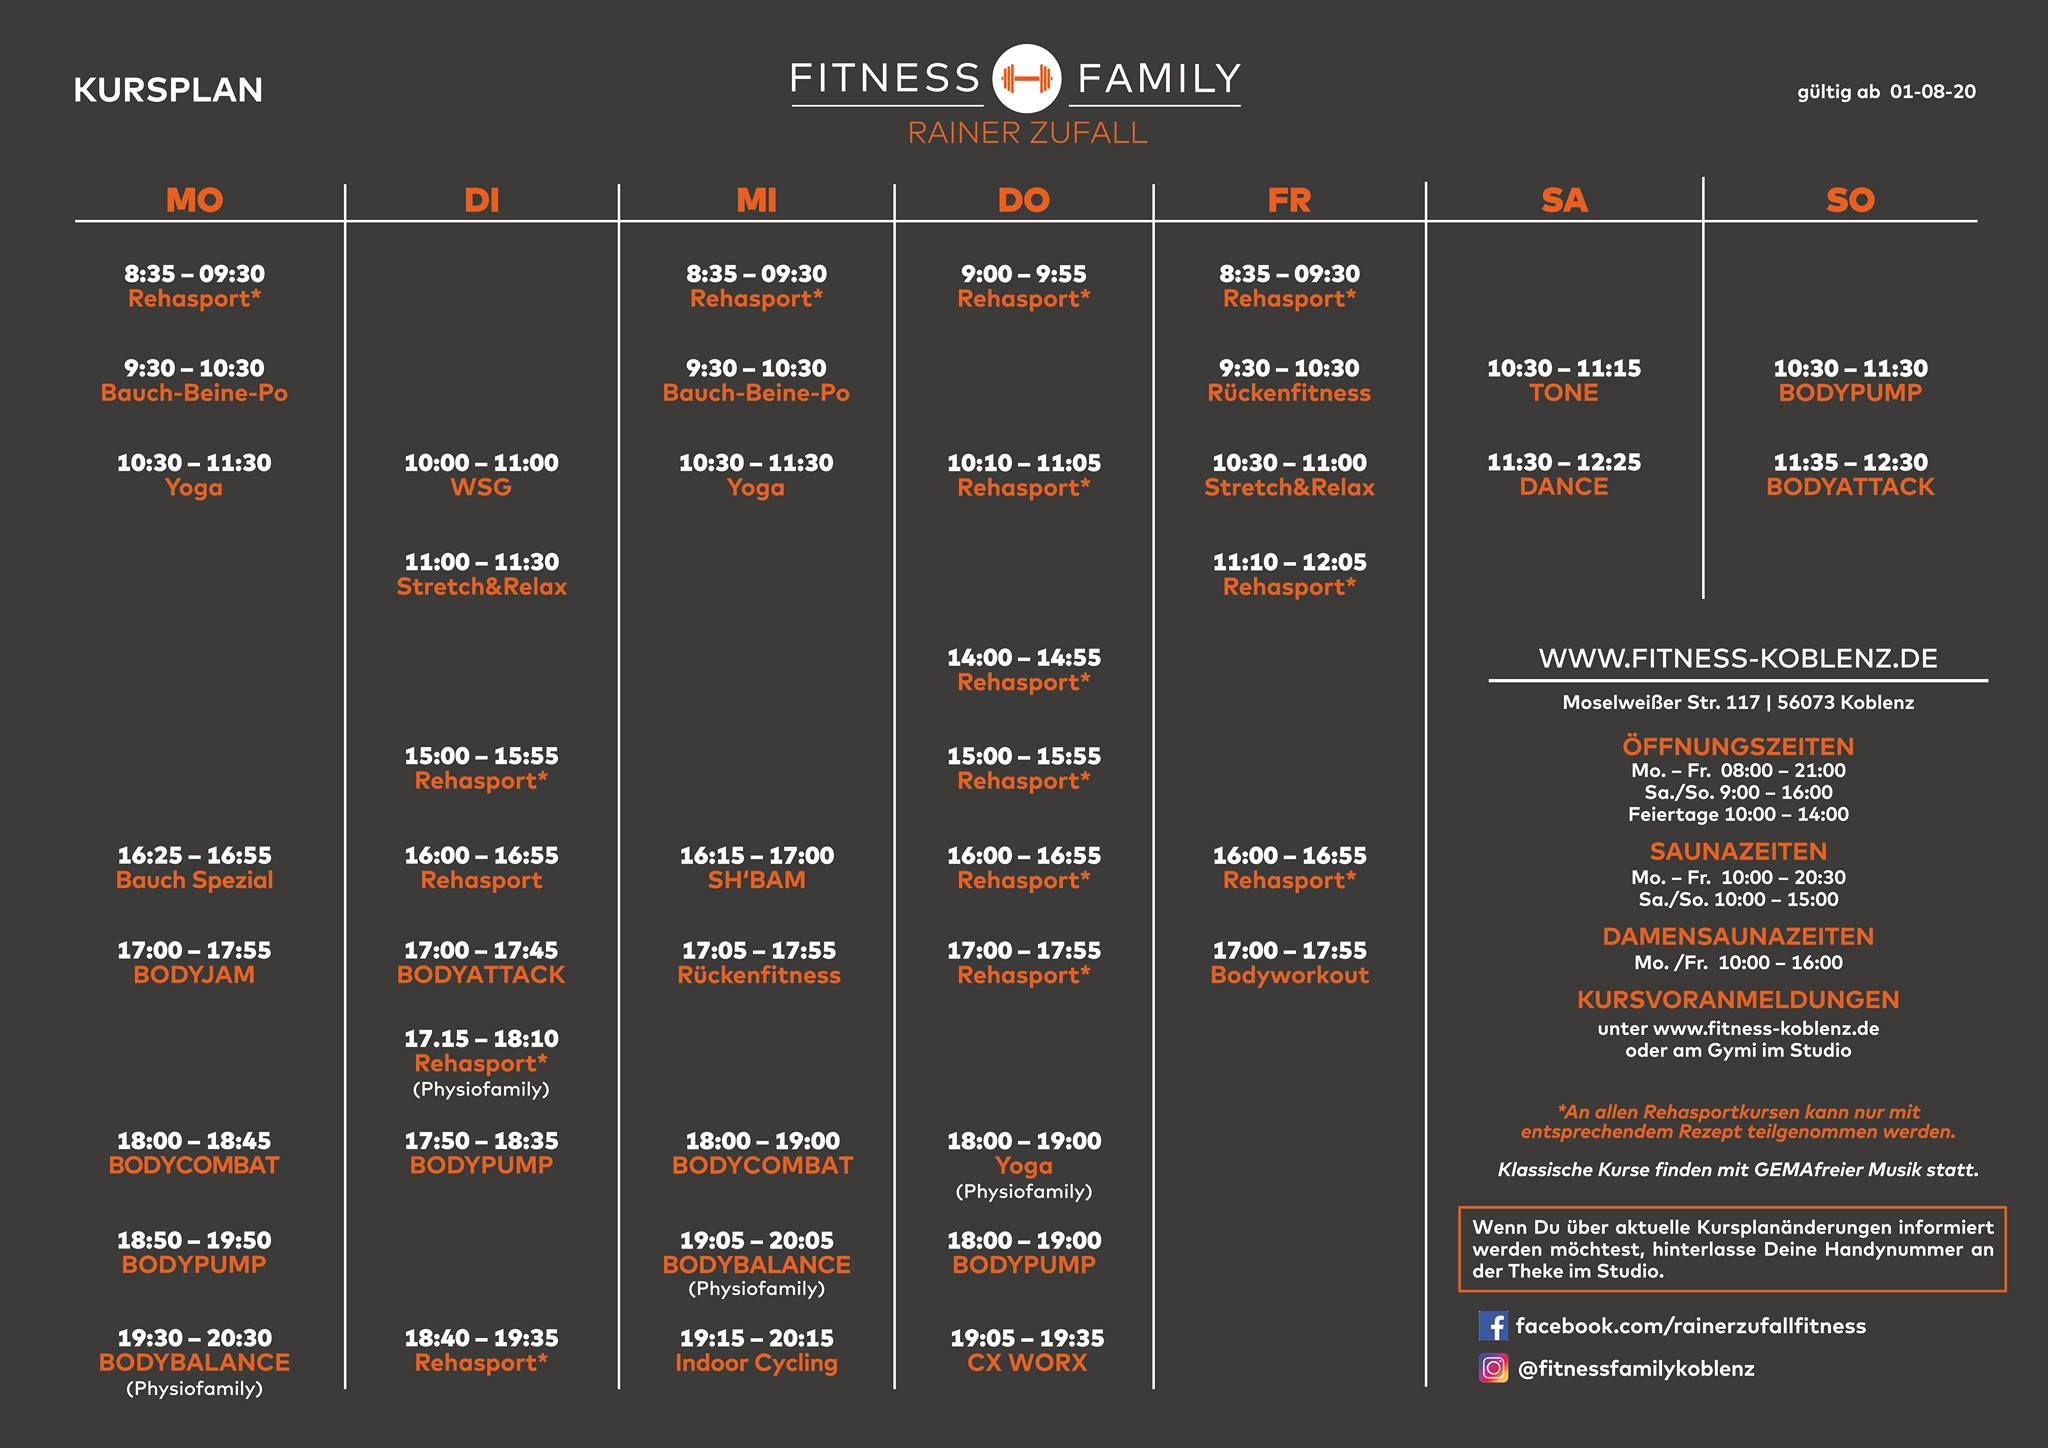 Fitness Family Koblenz Kursplan ab August 2020